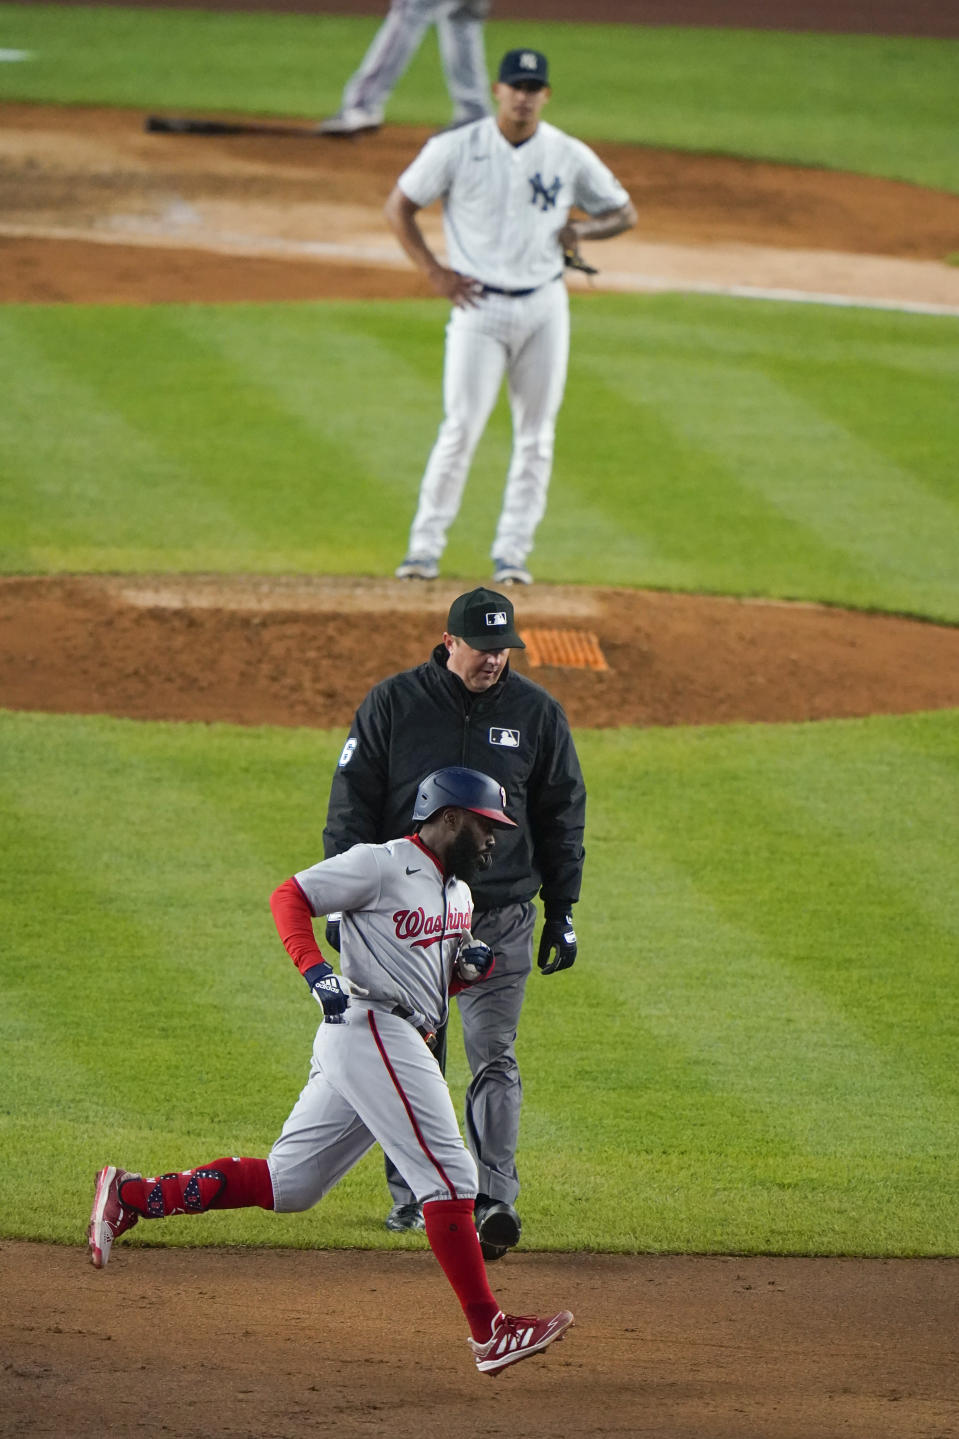 Washington Nationals' Josh Harrison runs the bases after hitting a three-run home run during the eighth inning of a baseball game as New York Yankees starting pitcher Jonathan Loaisiga watches, Friday, May 7, 2021, in New York. (AP Photo/Frank Franklin II)